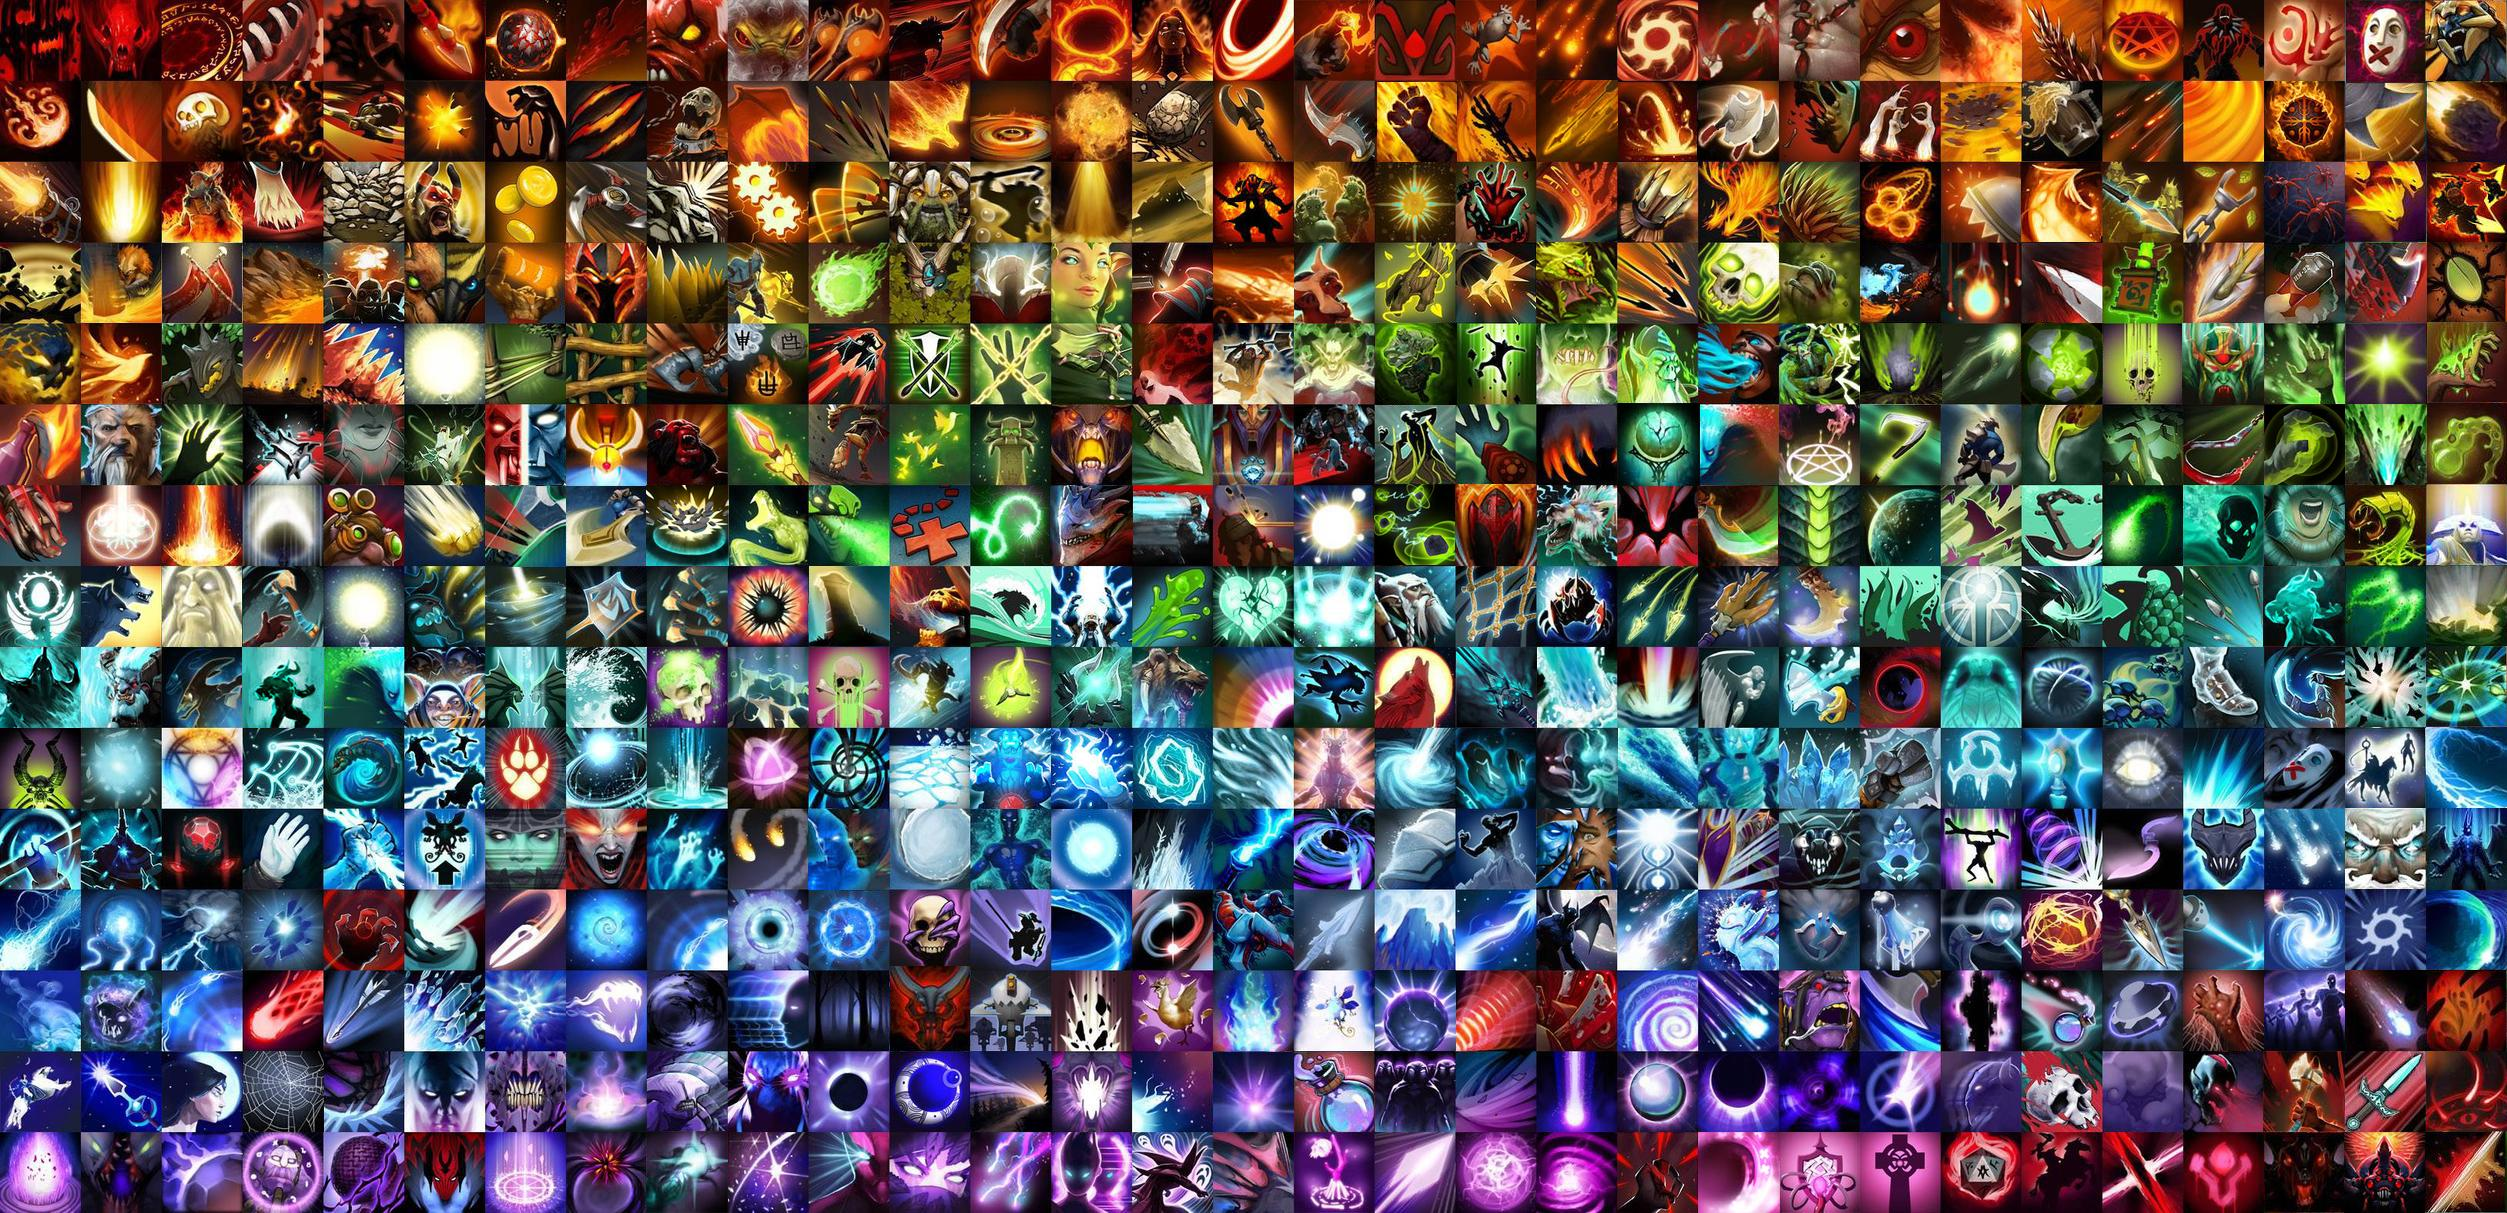 Skills Heroes Dota 2 desktop photos